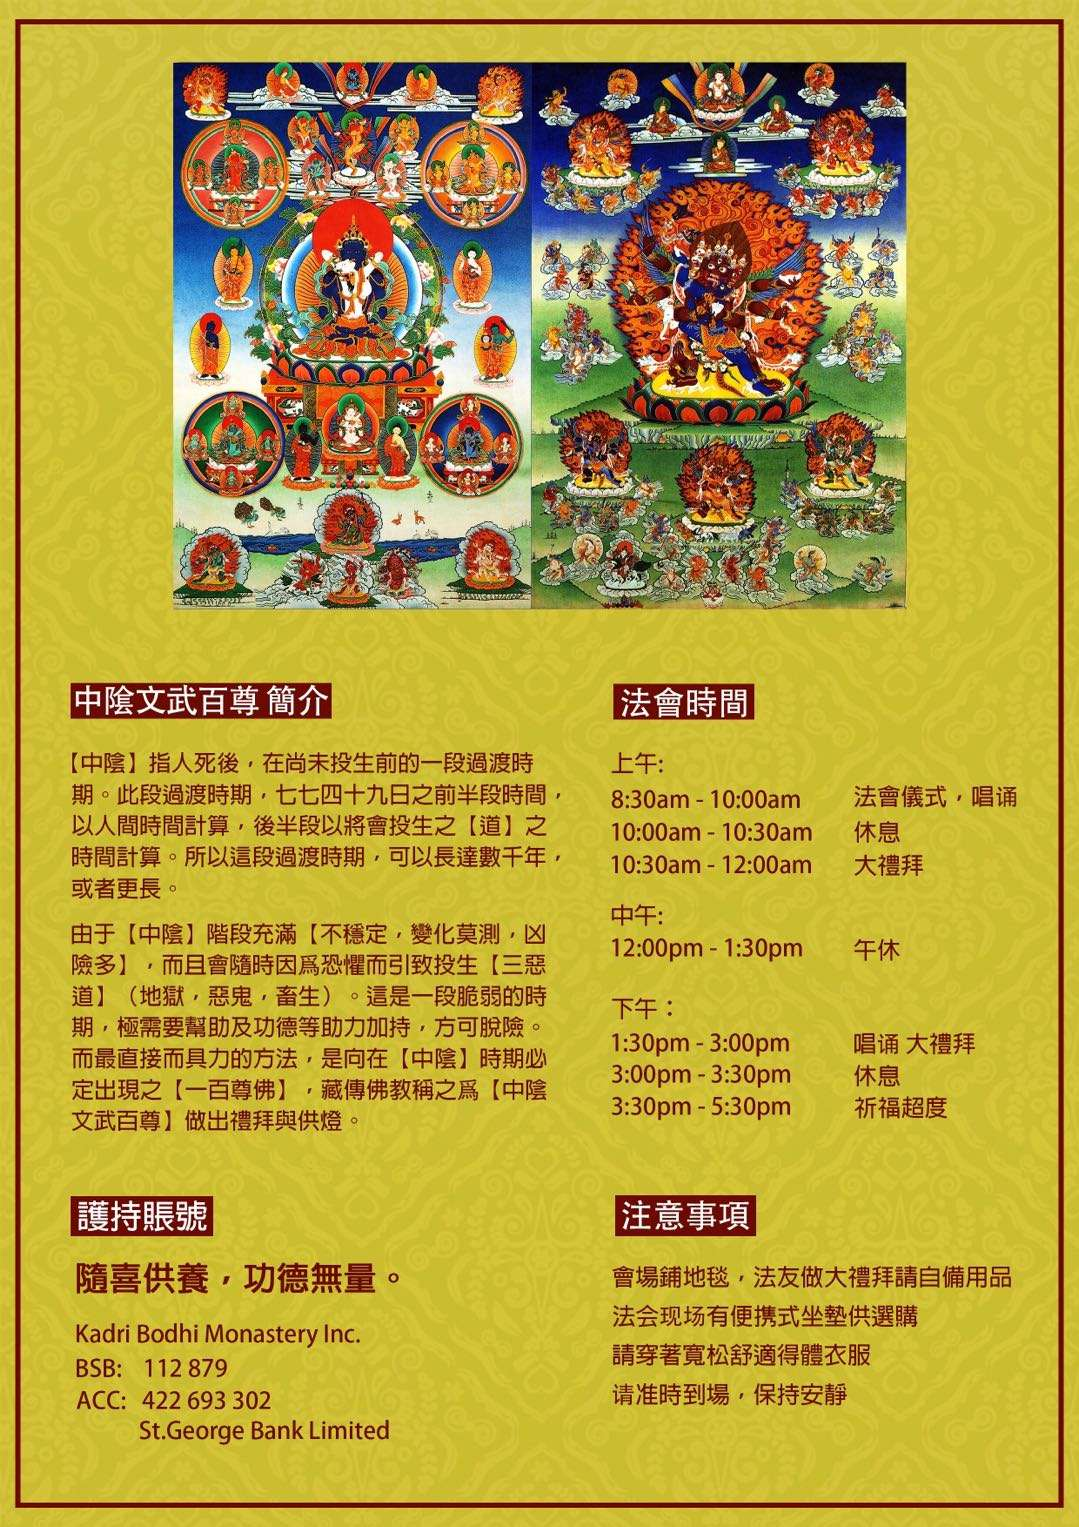 WeChat Image_20180830124121.jpg?x-oss-process=image/format,png